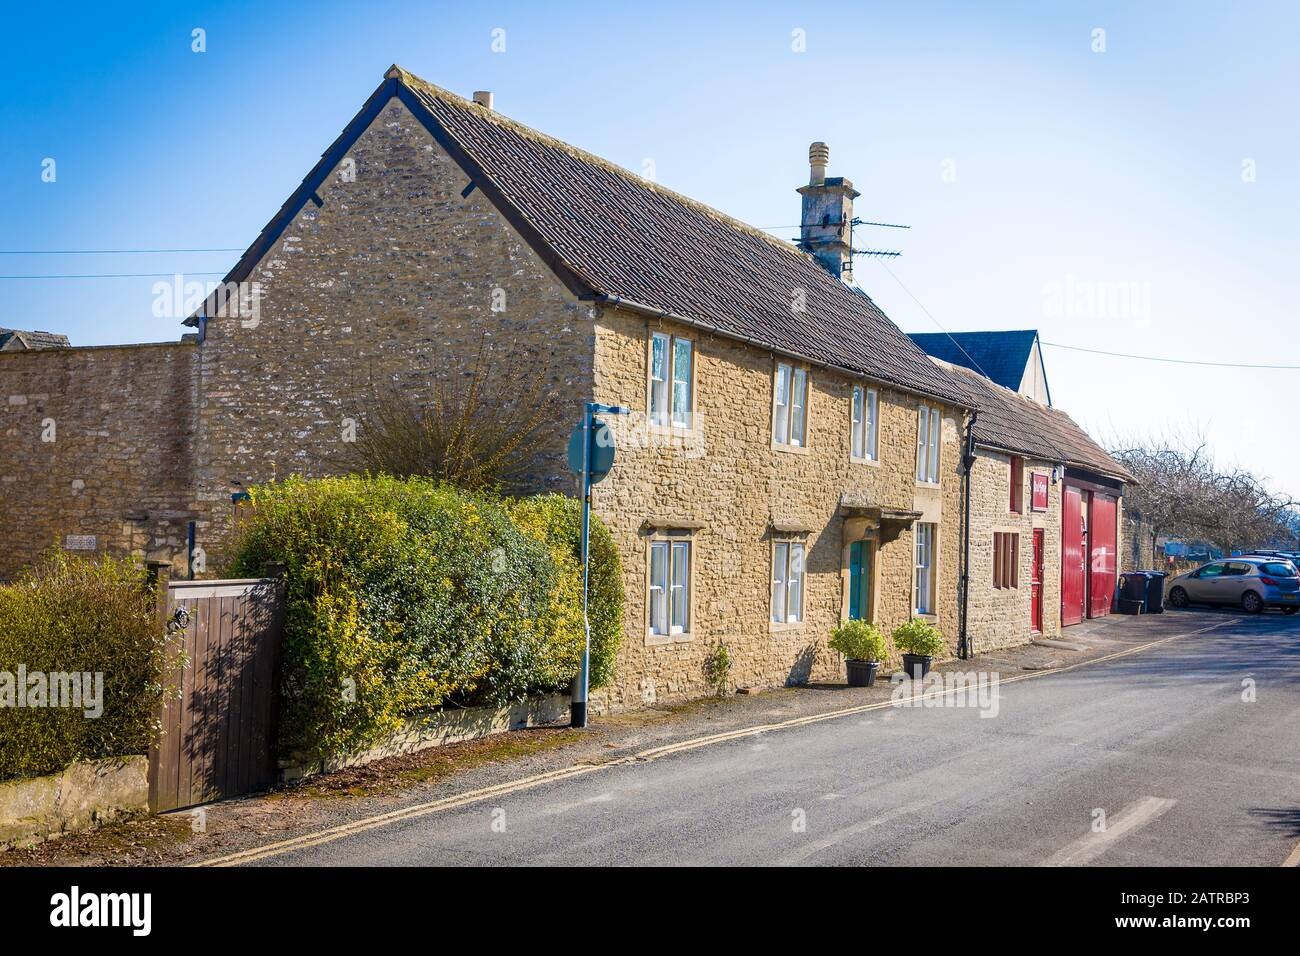 Private premises in Church Road Corsham town Wiltshire England UK Stock Photo